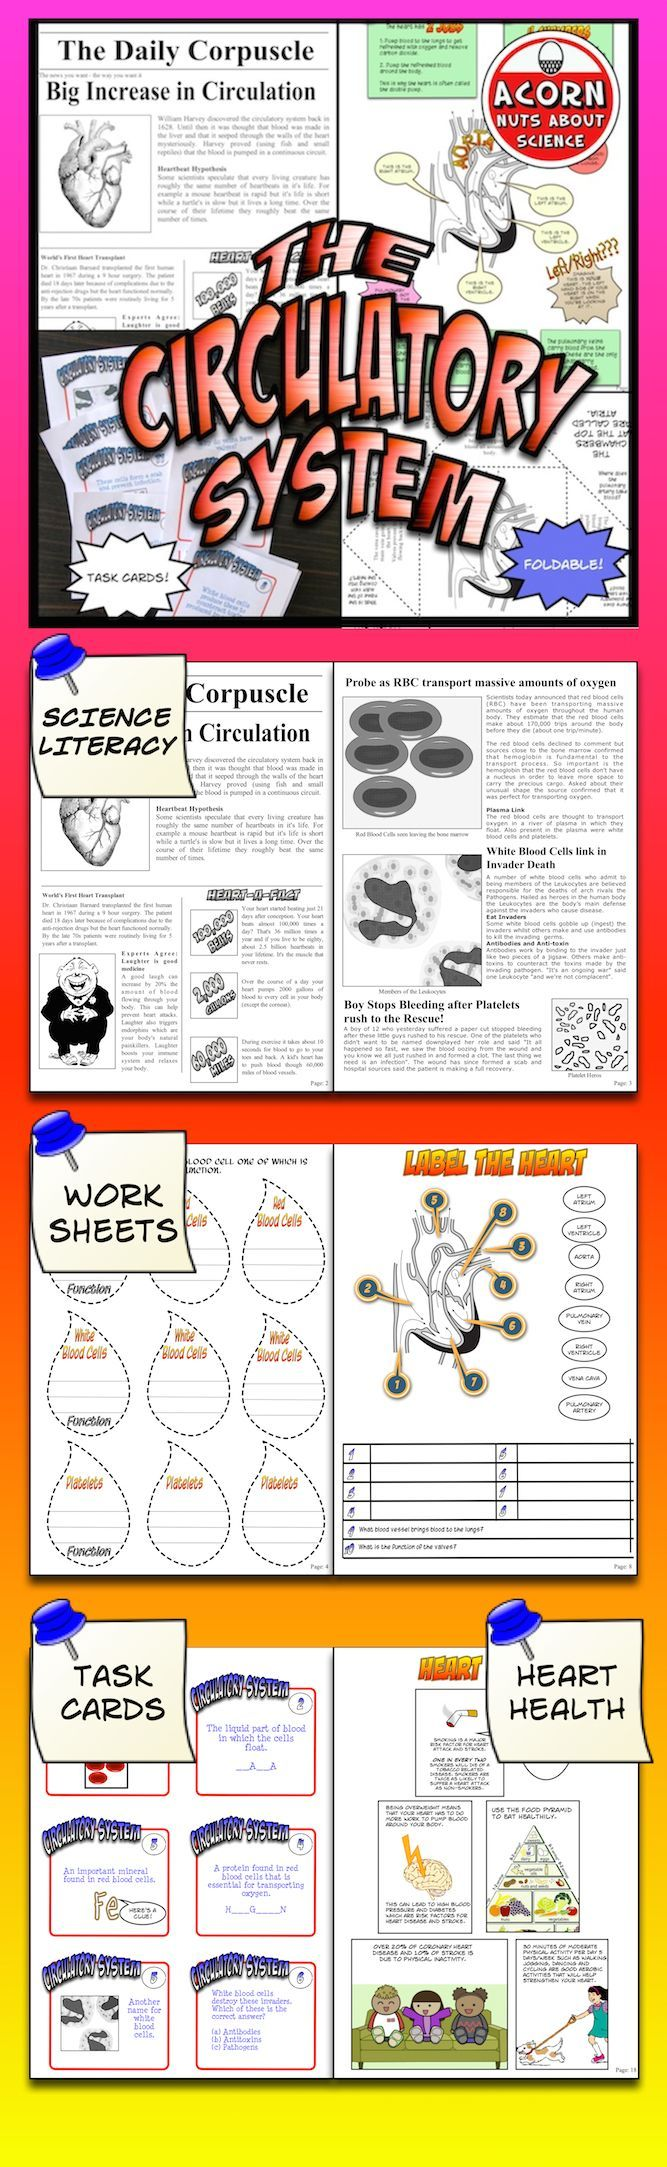 Circulatory system circulatory system worksheets and activities this circulatory system unit is packed with activities diagrams foldables worksheets circulatory robcynllc Image collections